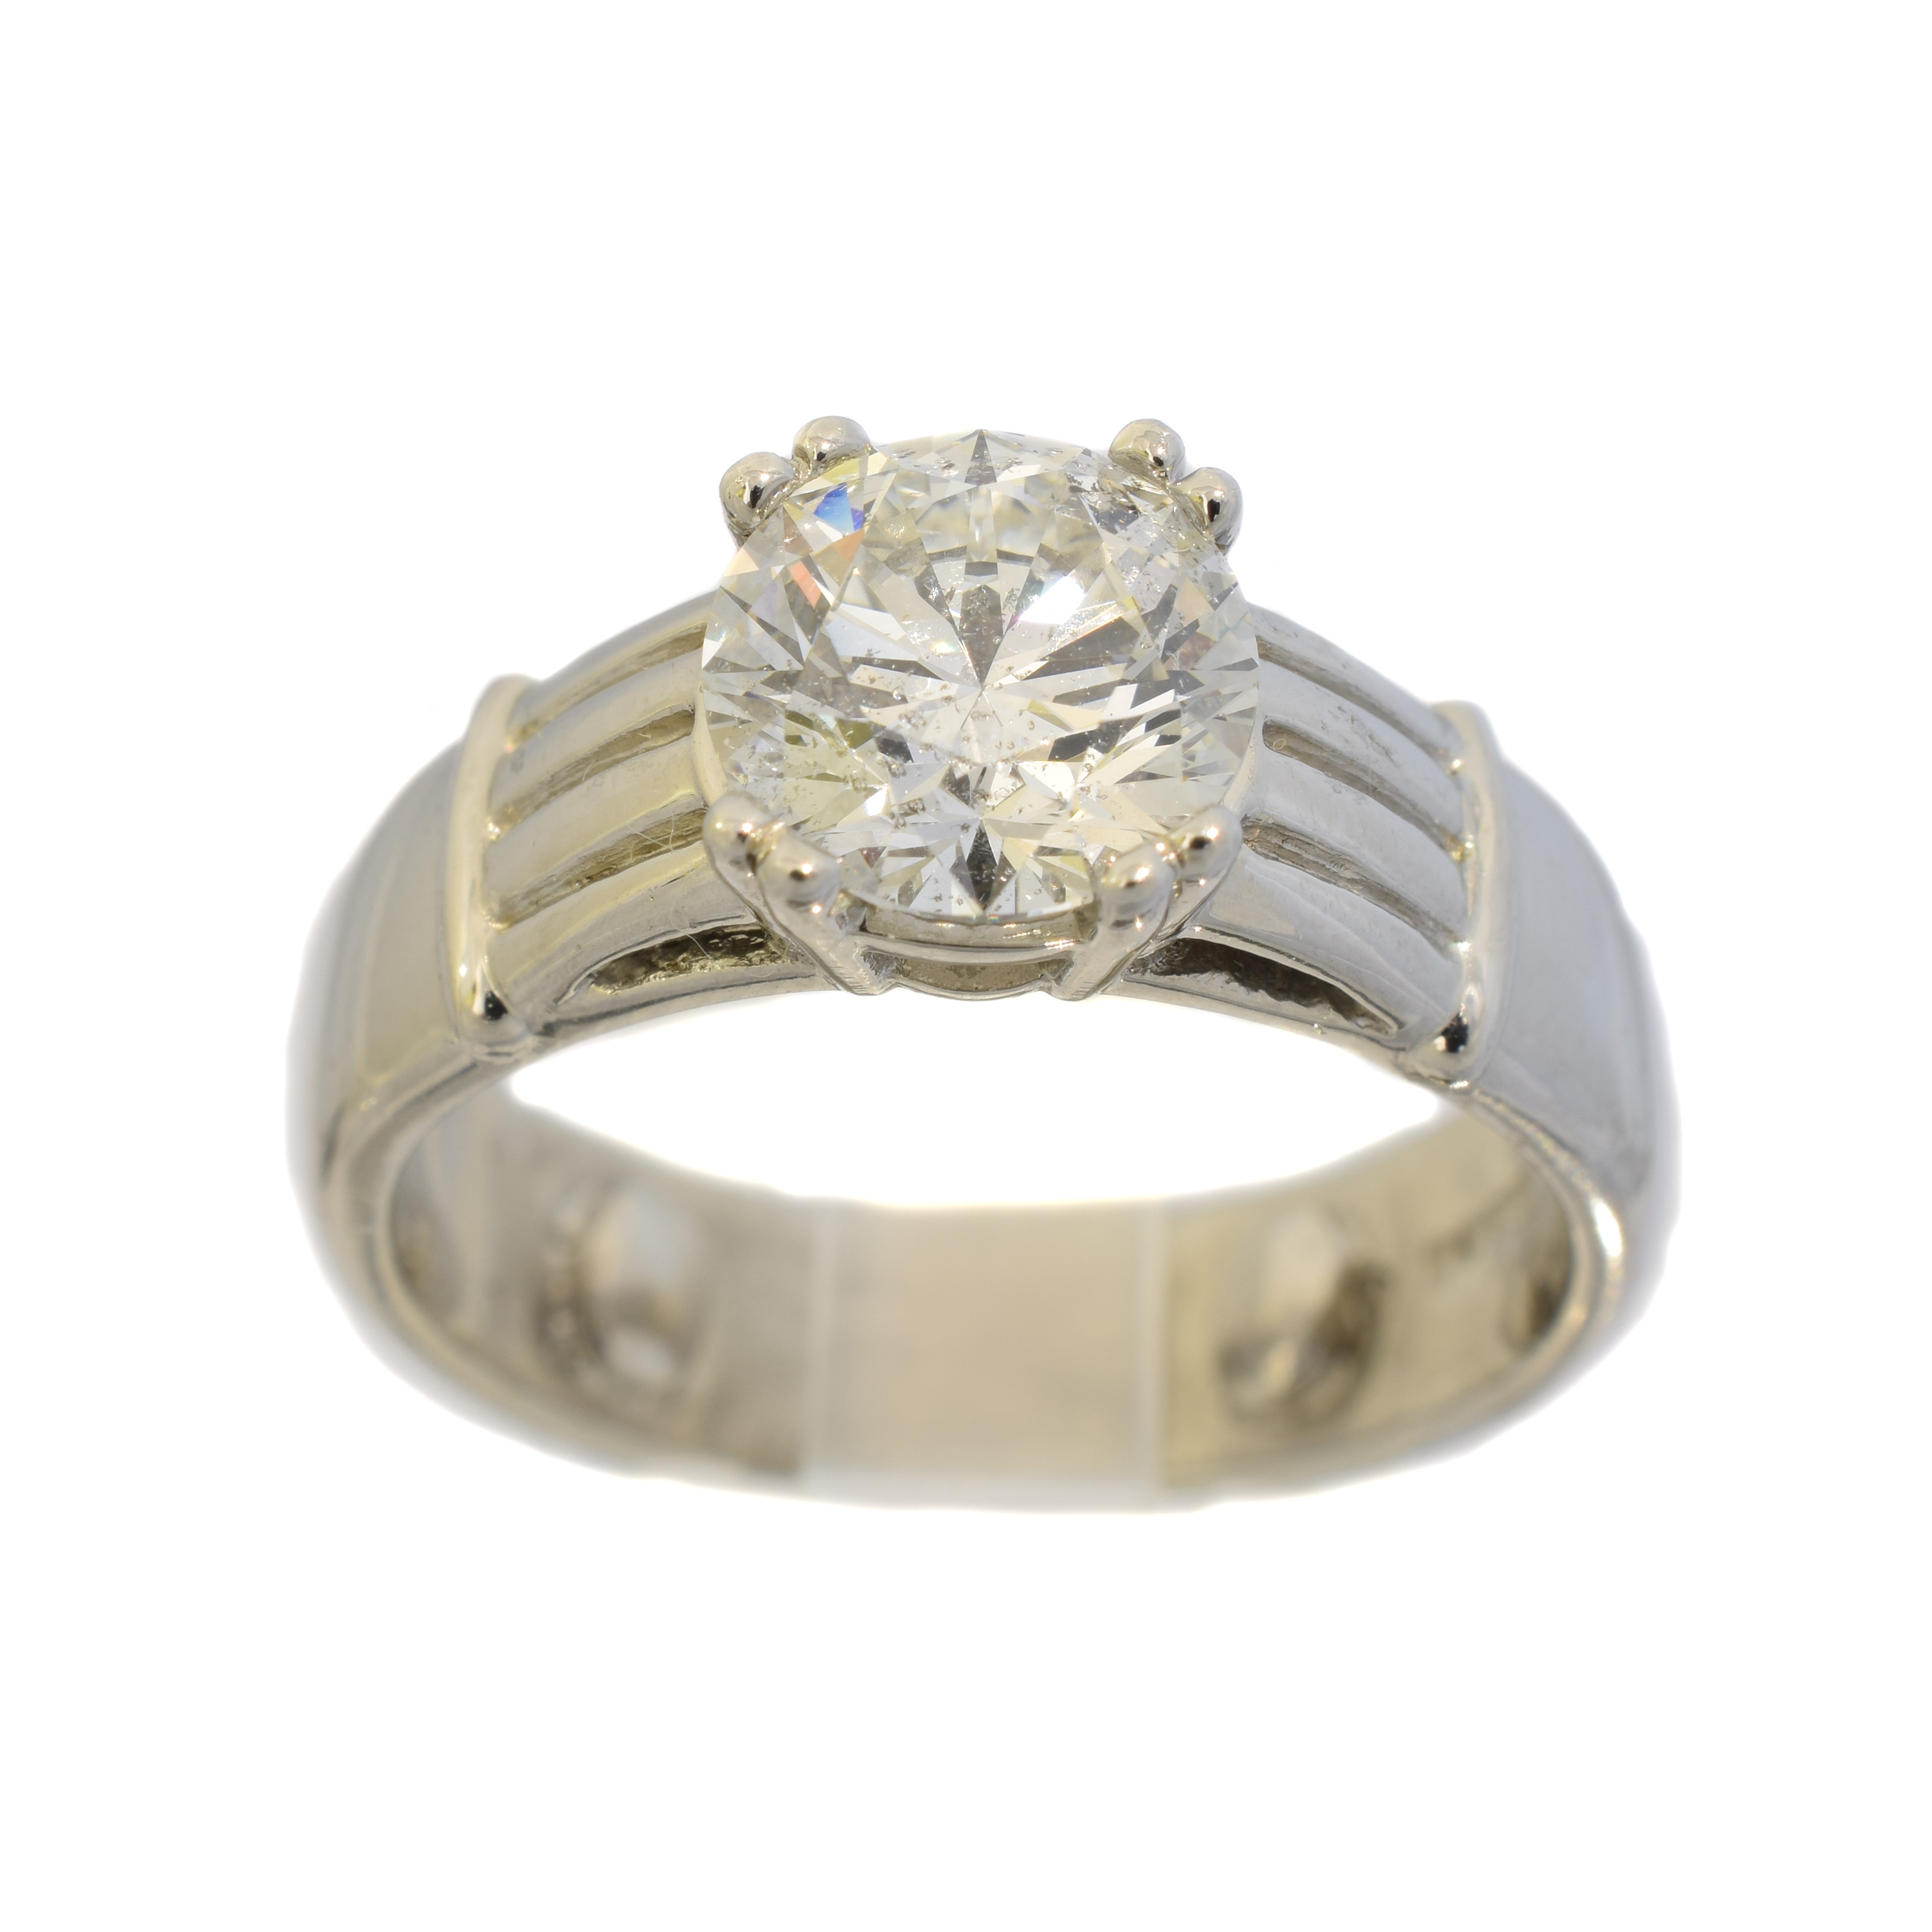 A platinum diamond single stone ring, the brilliant cut diamond weighing 2.21cts within a four claw setting, to the grooved shoulders, hallmarks for Sheffield, ring size Q, gross weight 13.6g. Accompanied by a certificate from E.G.L numbered EGL3201067120 stating that the diamond is D colour, SI2 clarity.